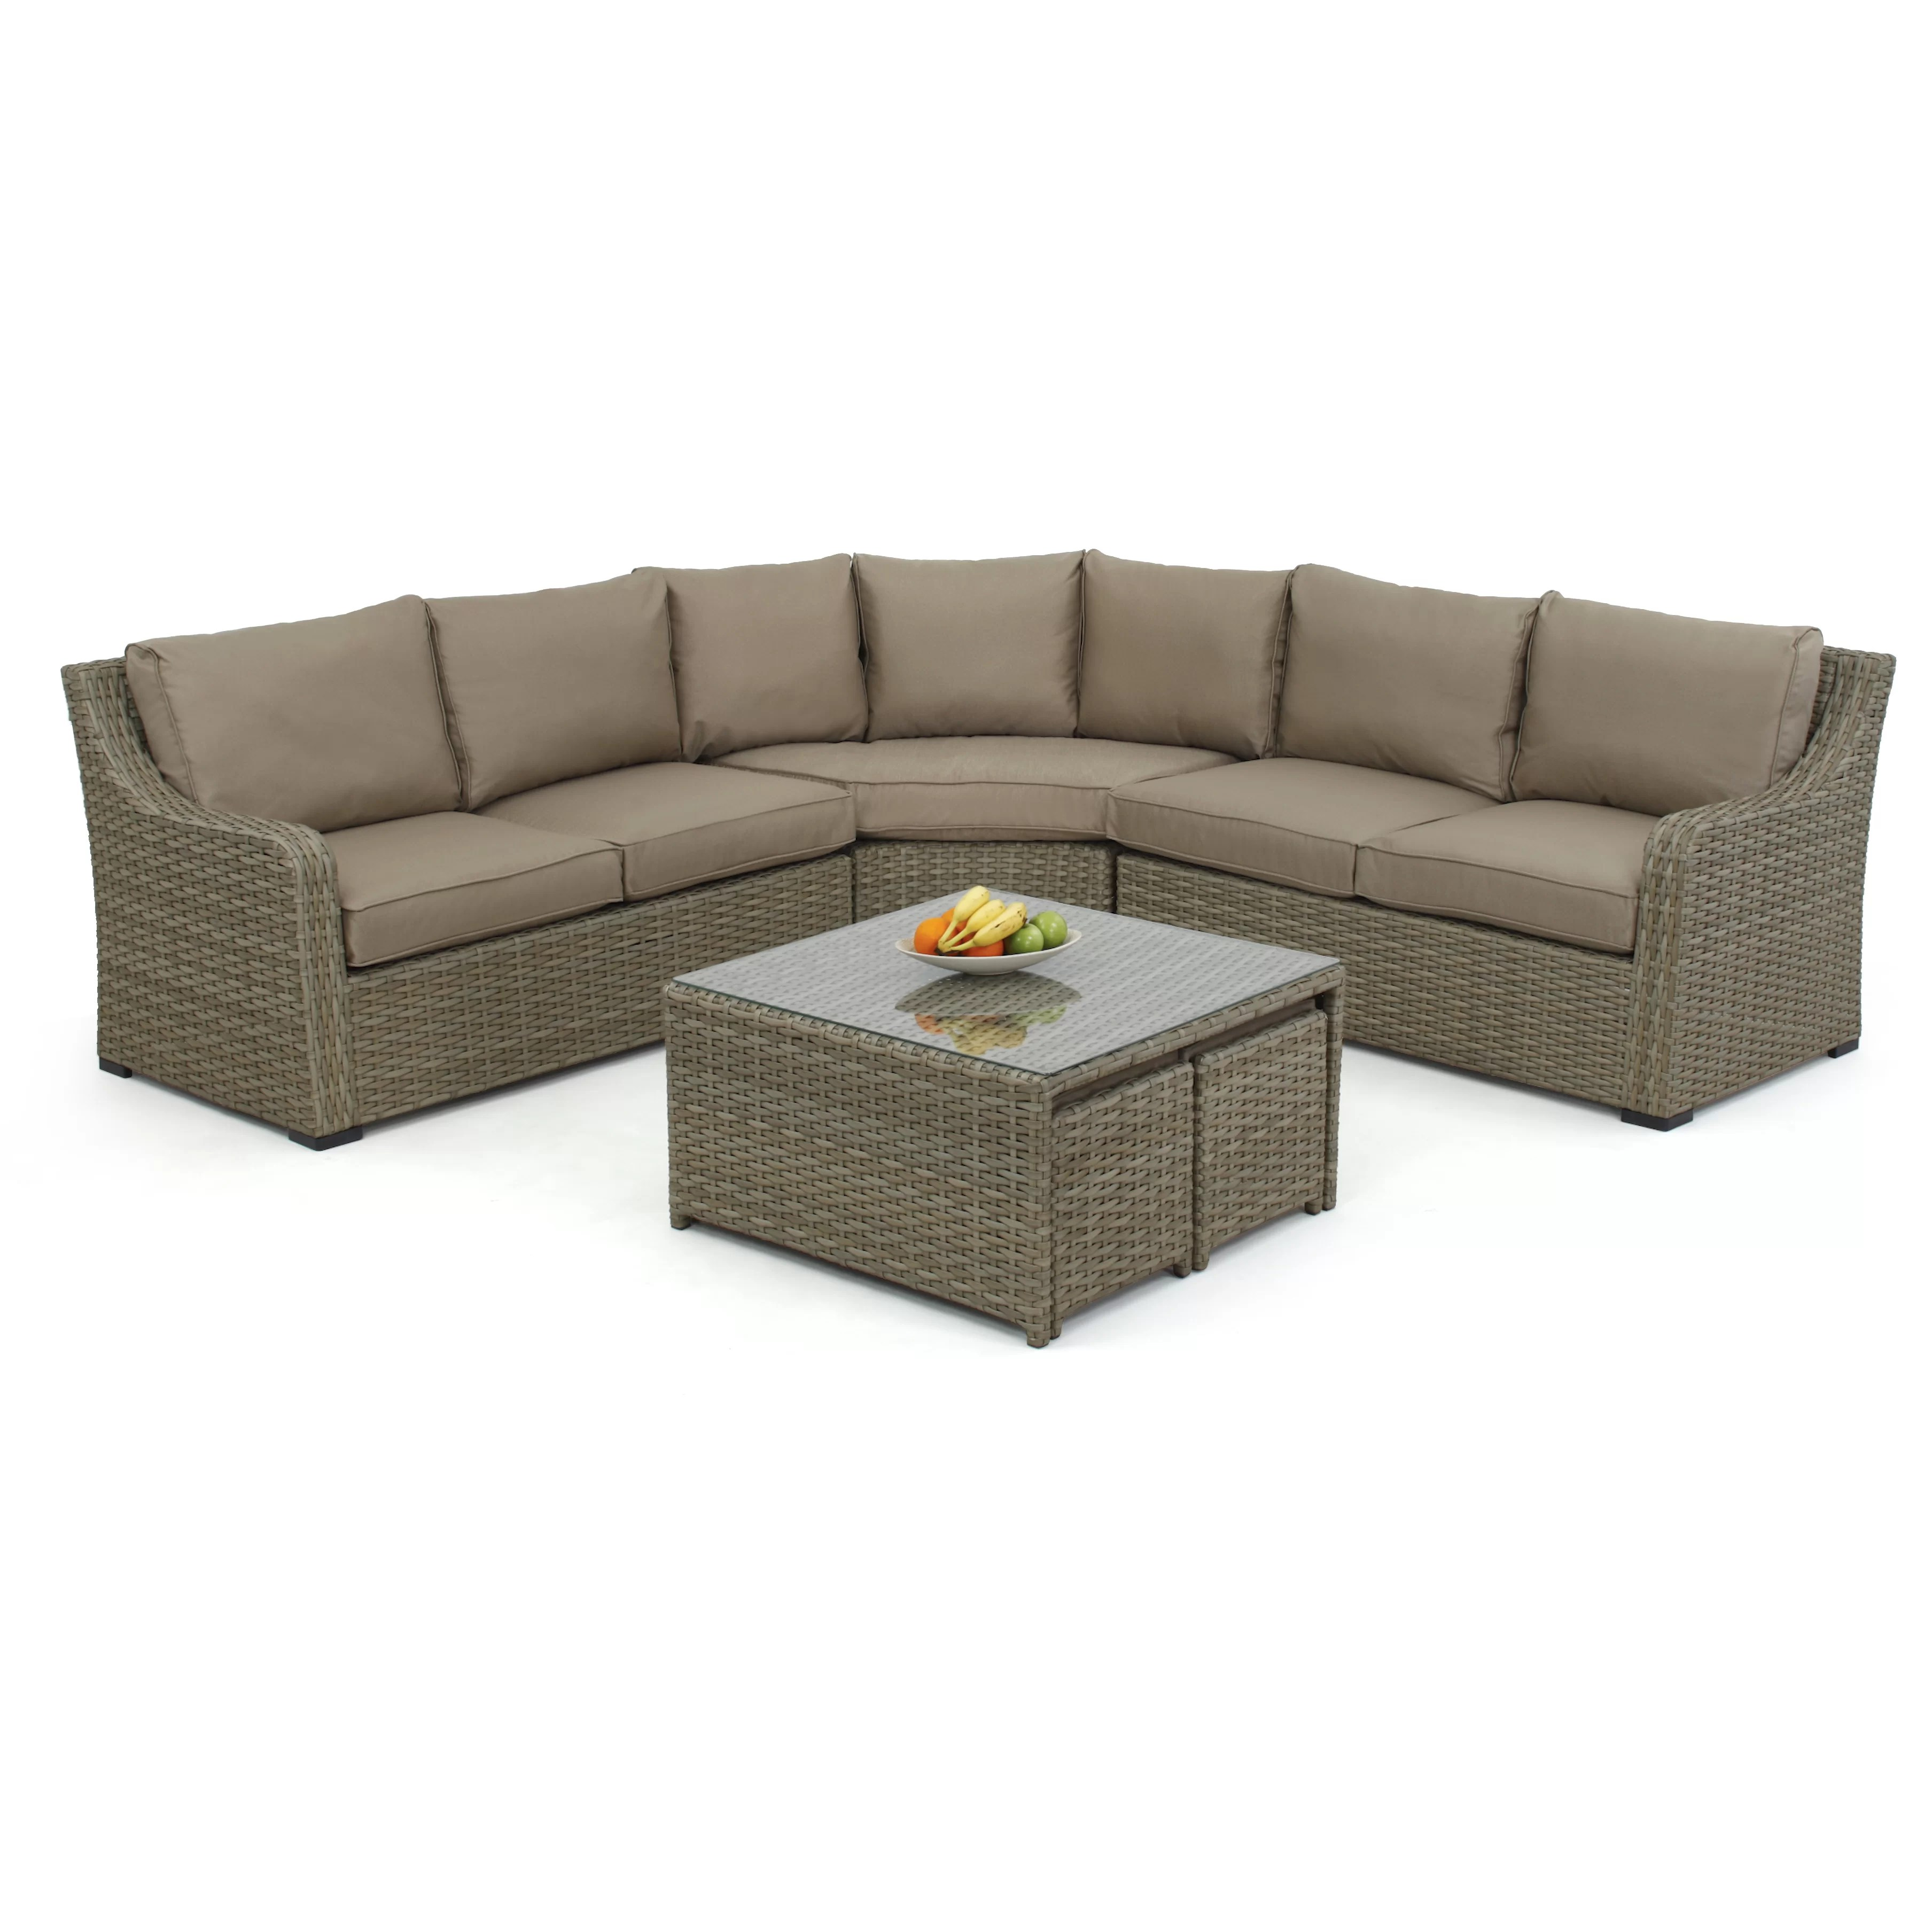 cushion sofa set latex foam cushions for sofas maze rattan milan 7 seater sectional with